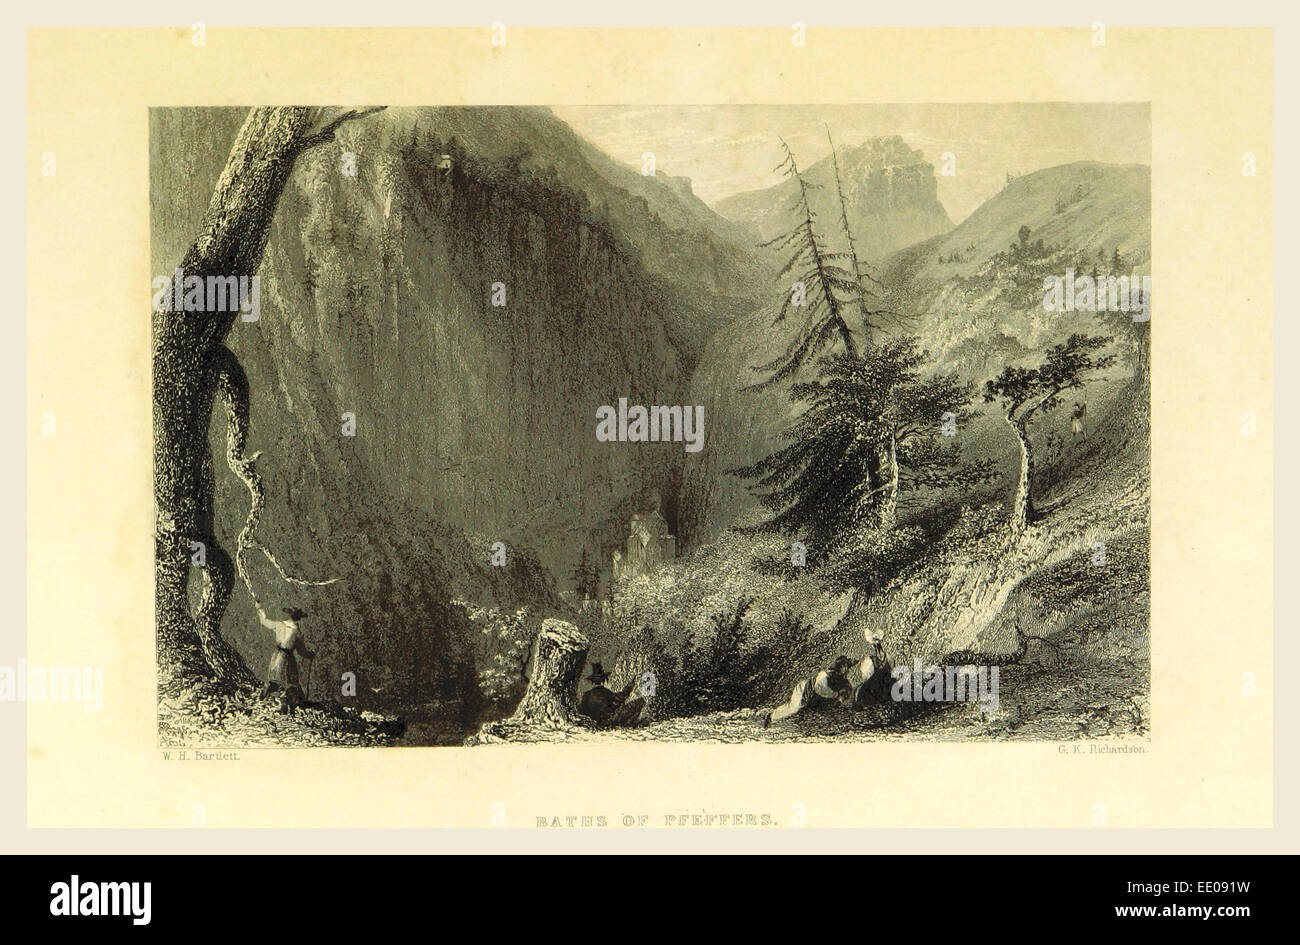 Baths of Pfeffers, Switzerland. Illustrated in a series of views taken expressly for this work by W. H. Bartlett - Stock Image